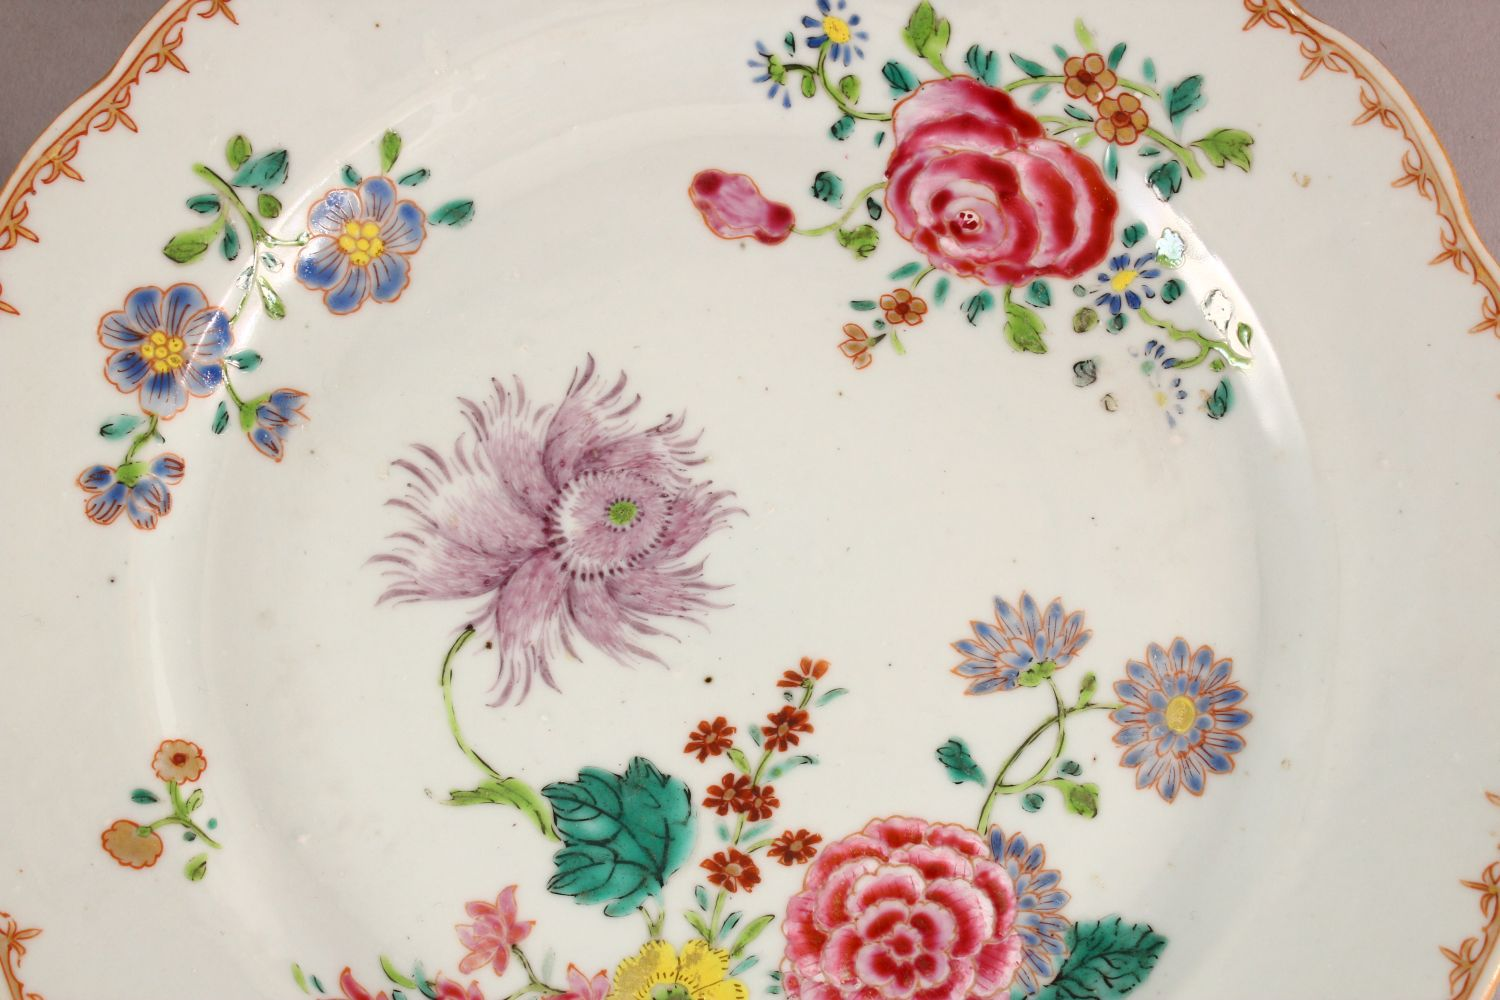 A SET OF FOUR 18TH / 19TH CENTURY CHINESE FAMILLE ROSE PLATES, with floral decoration, 23cm - Image 4 of 6